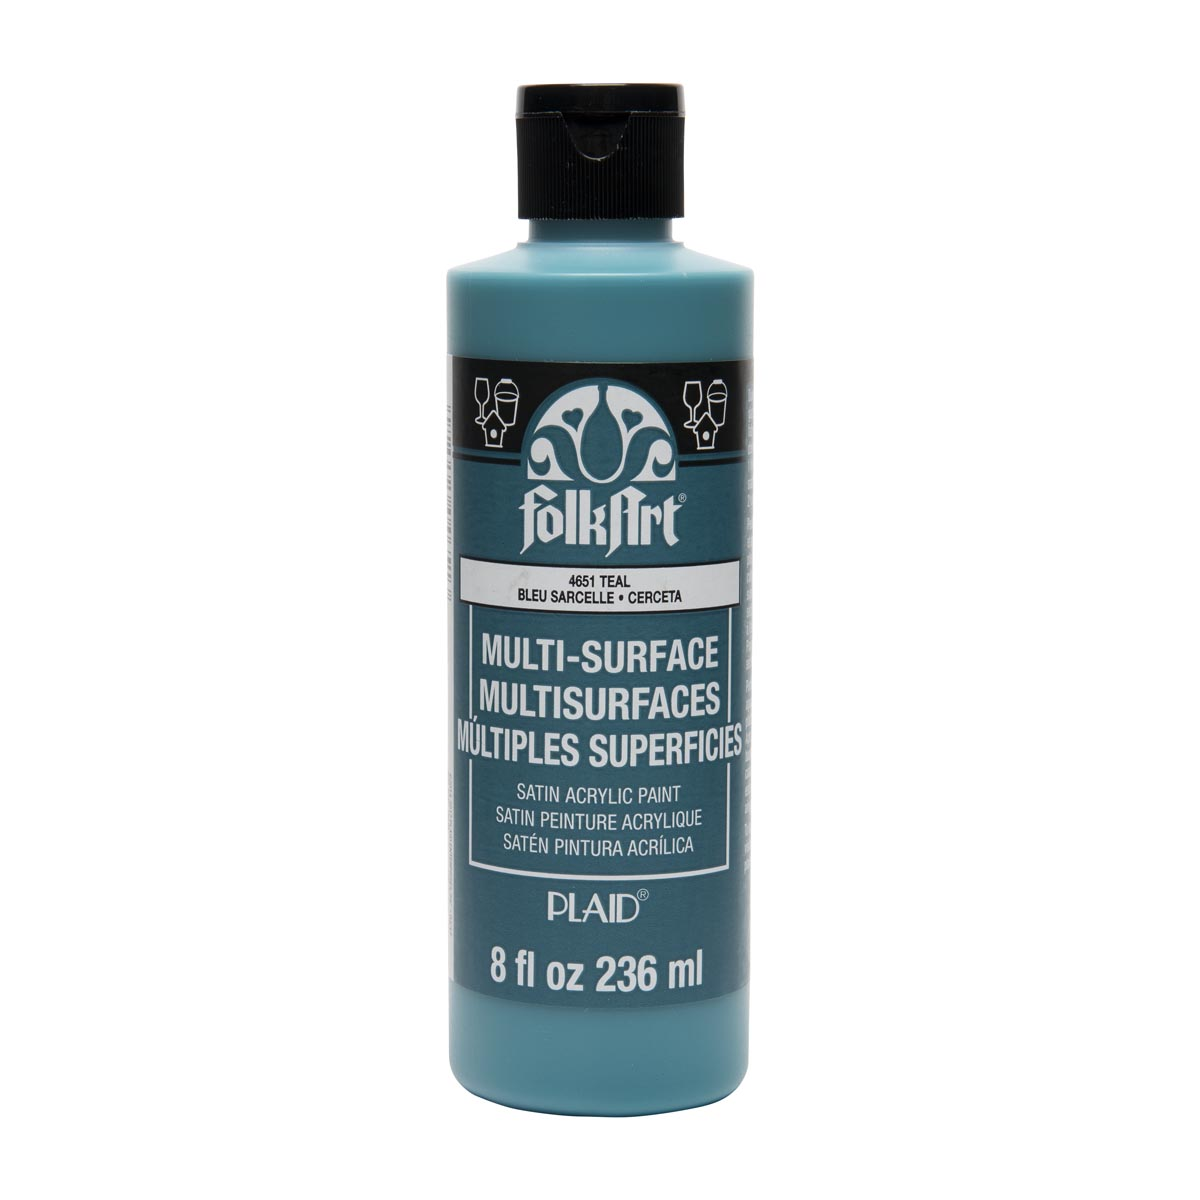 FolkArt ® Multi-Surface Satin Acrylic Paints - Teal, 8 oz. - 4651